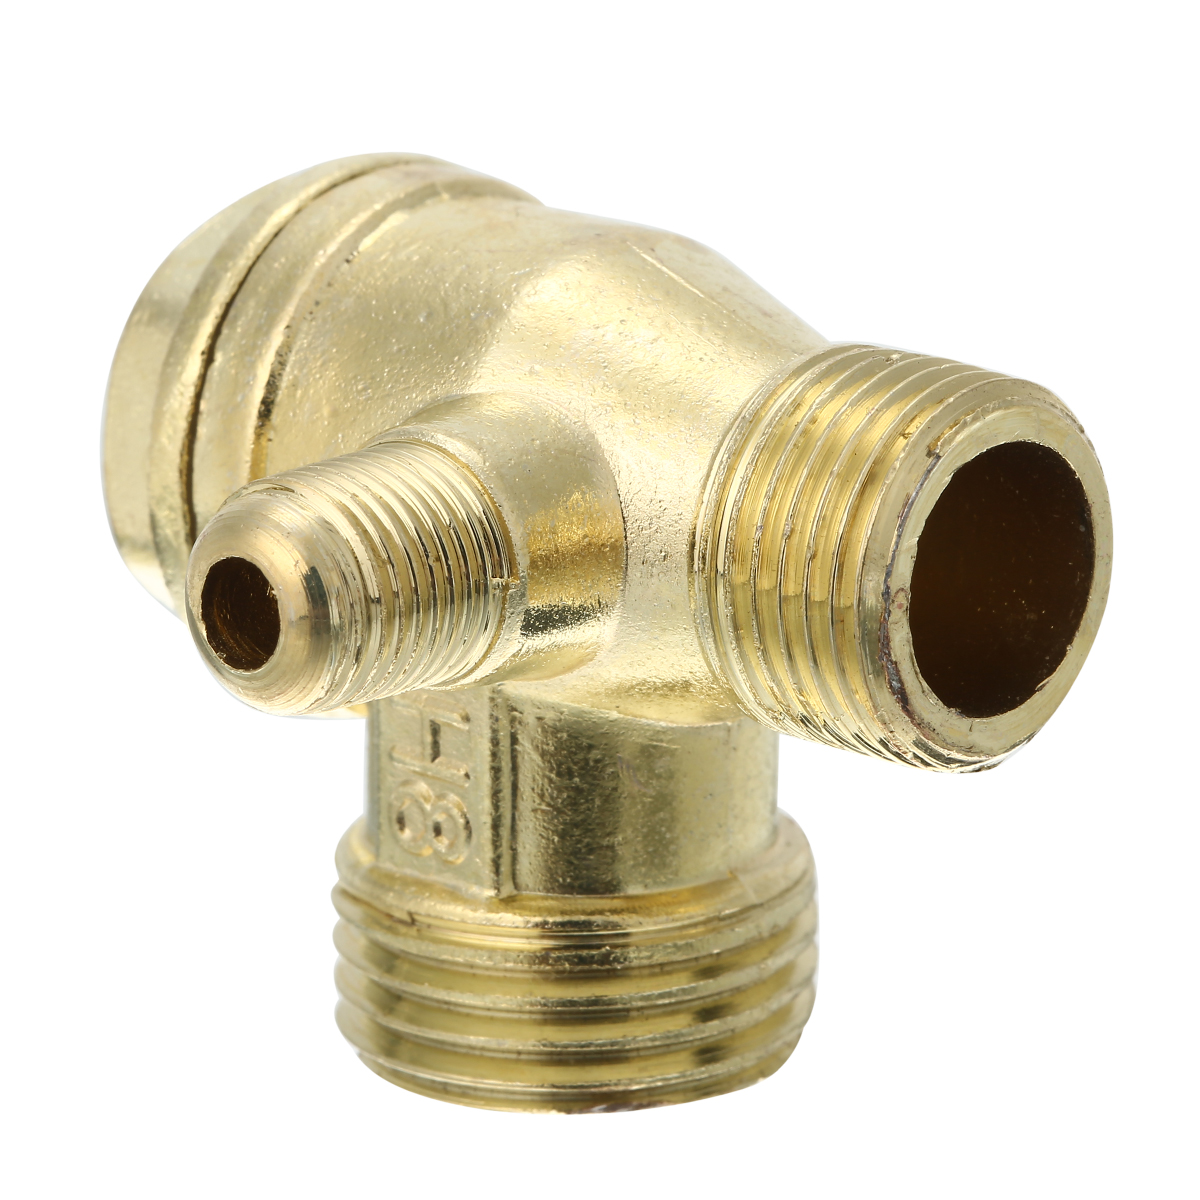 1pc 3-Port Aluminum Alloy Male Threaded Check Valve Connector Cast Iron 4.1cmx3.87cm For Air Compressor